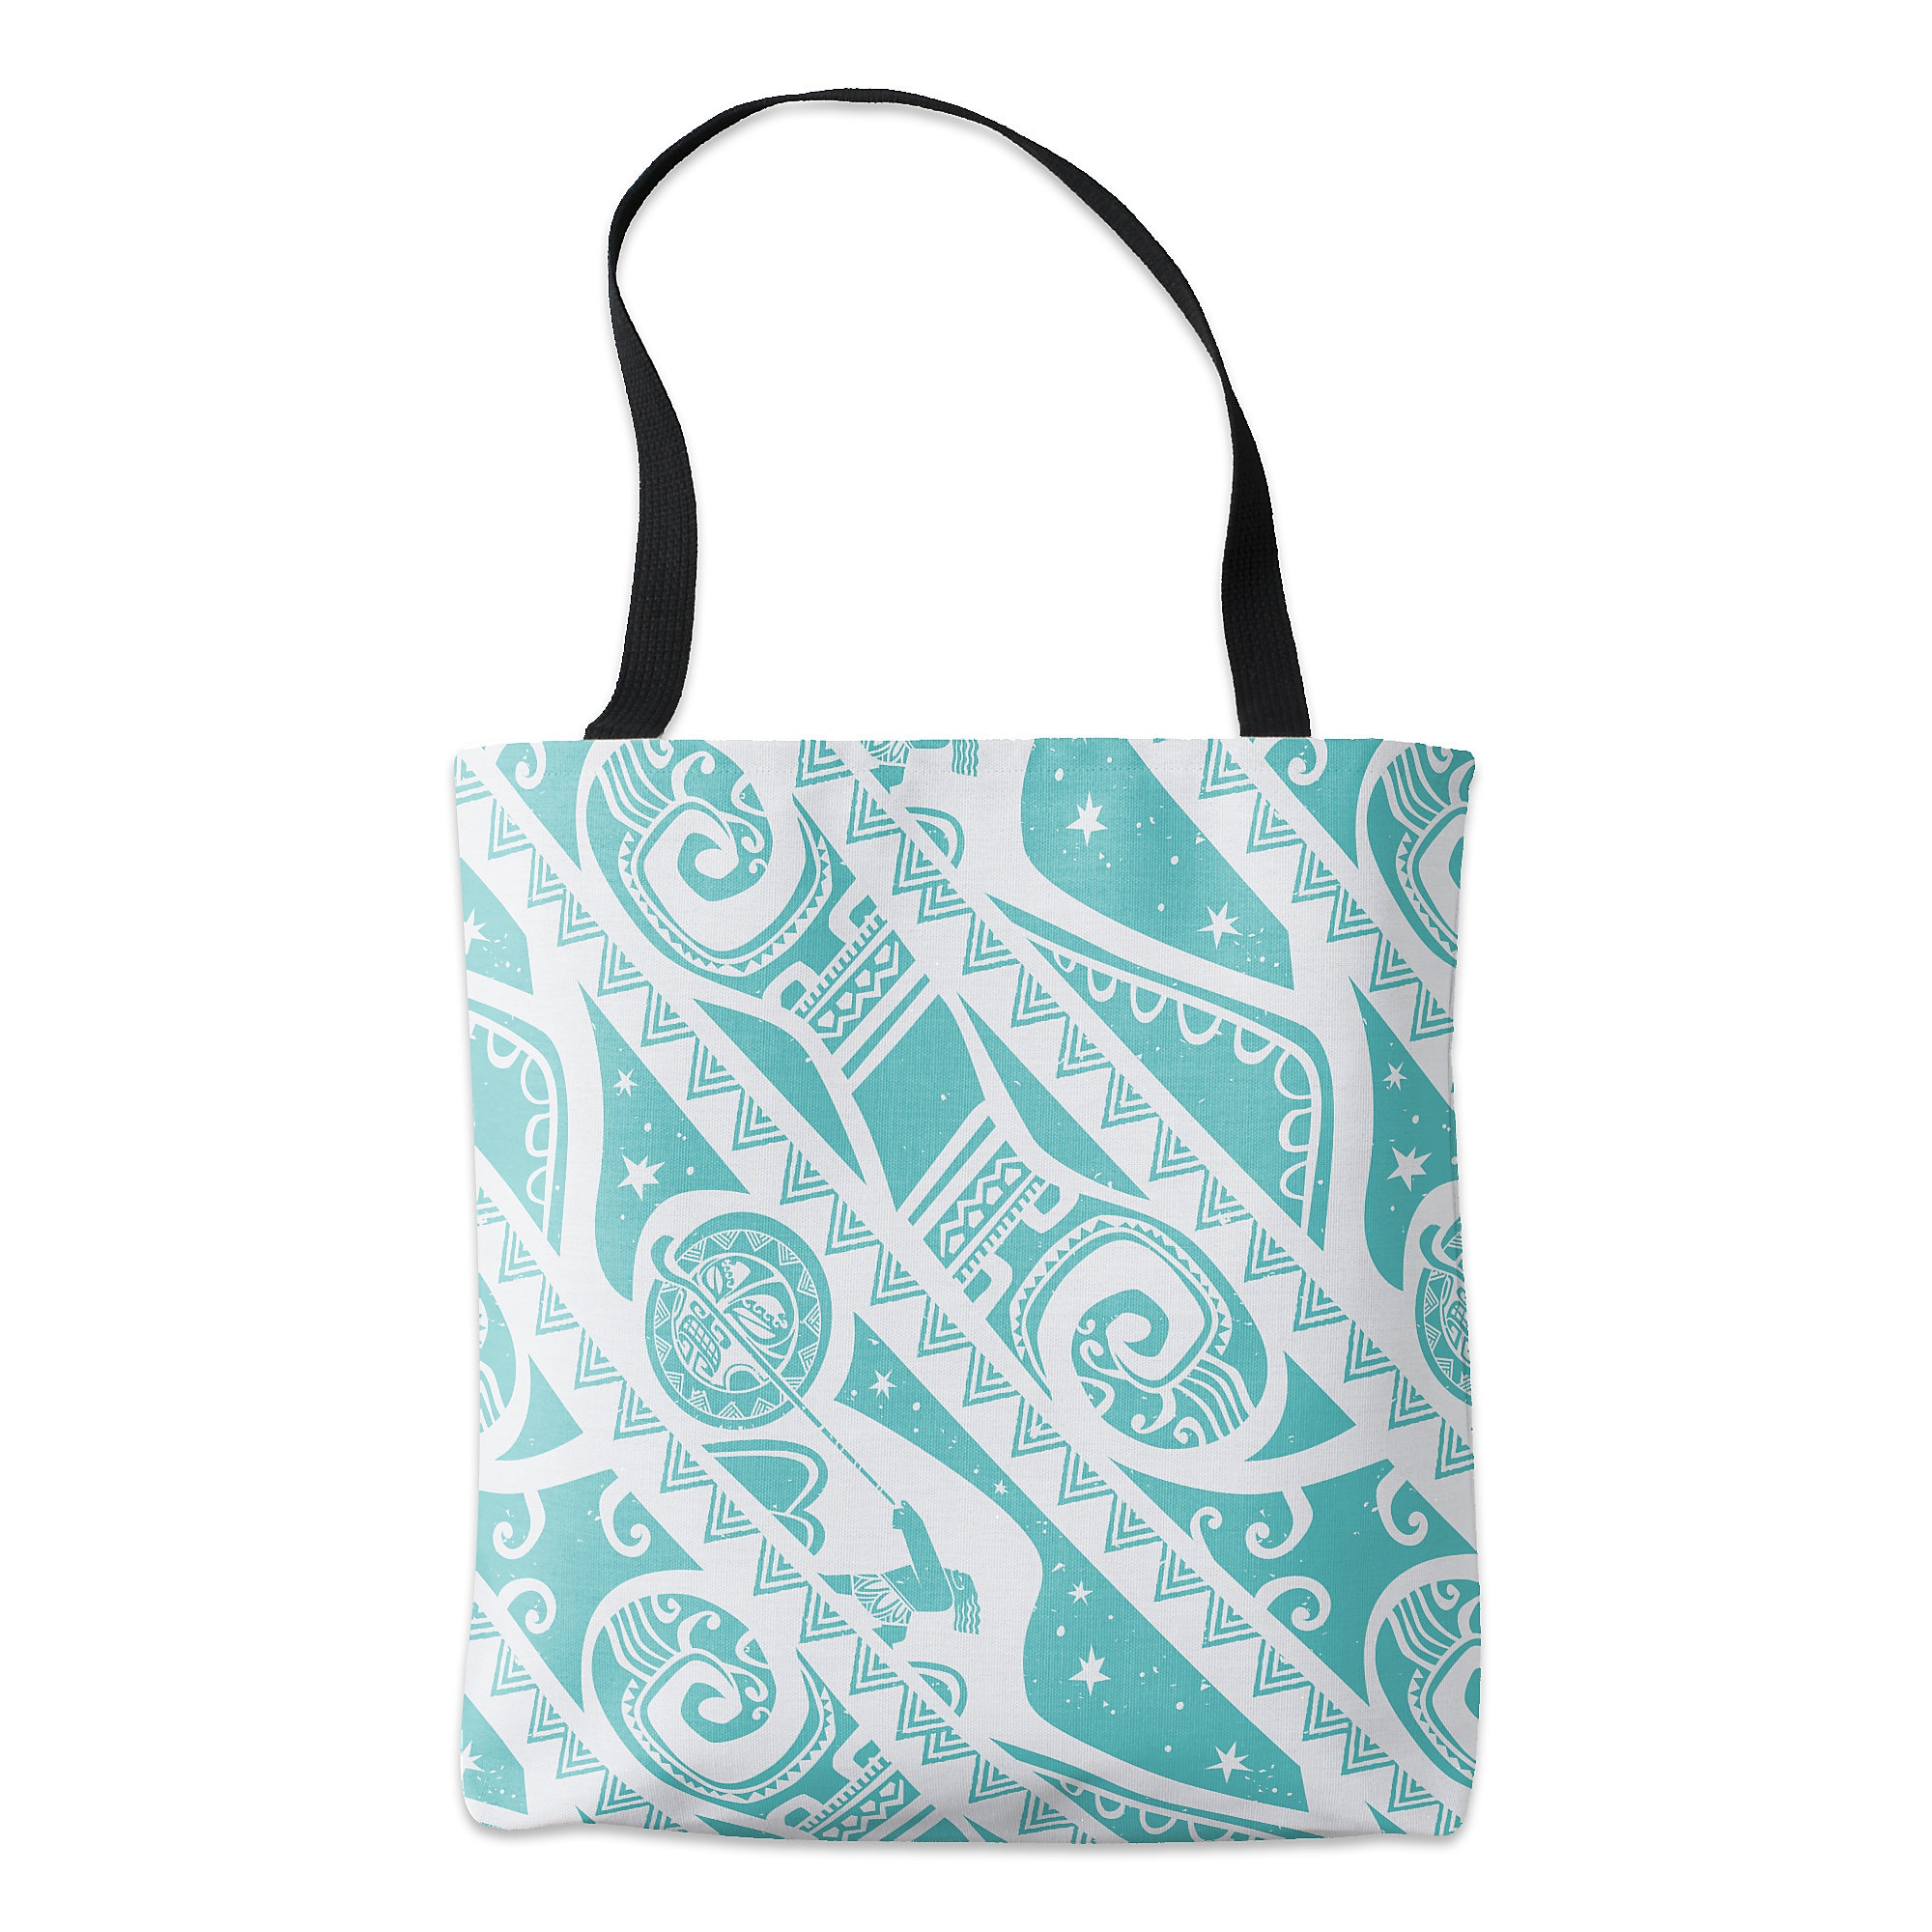 Moana Teal Aztec Pattern Tote - Customizable